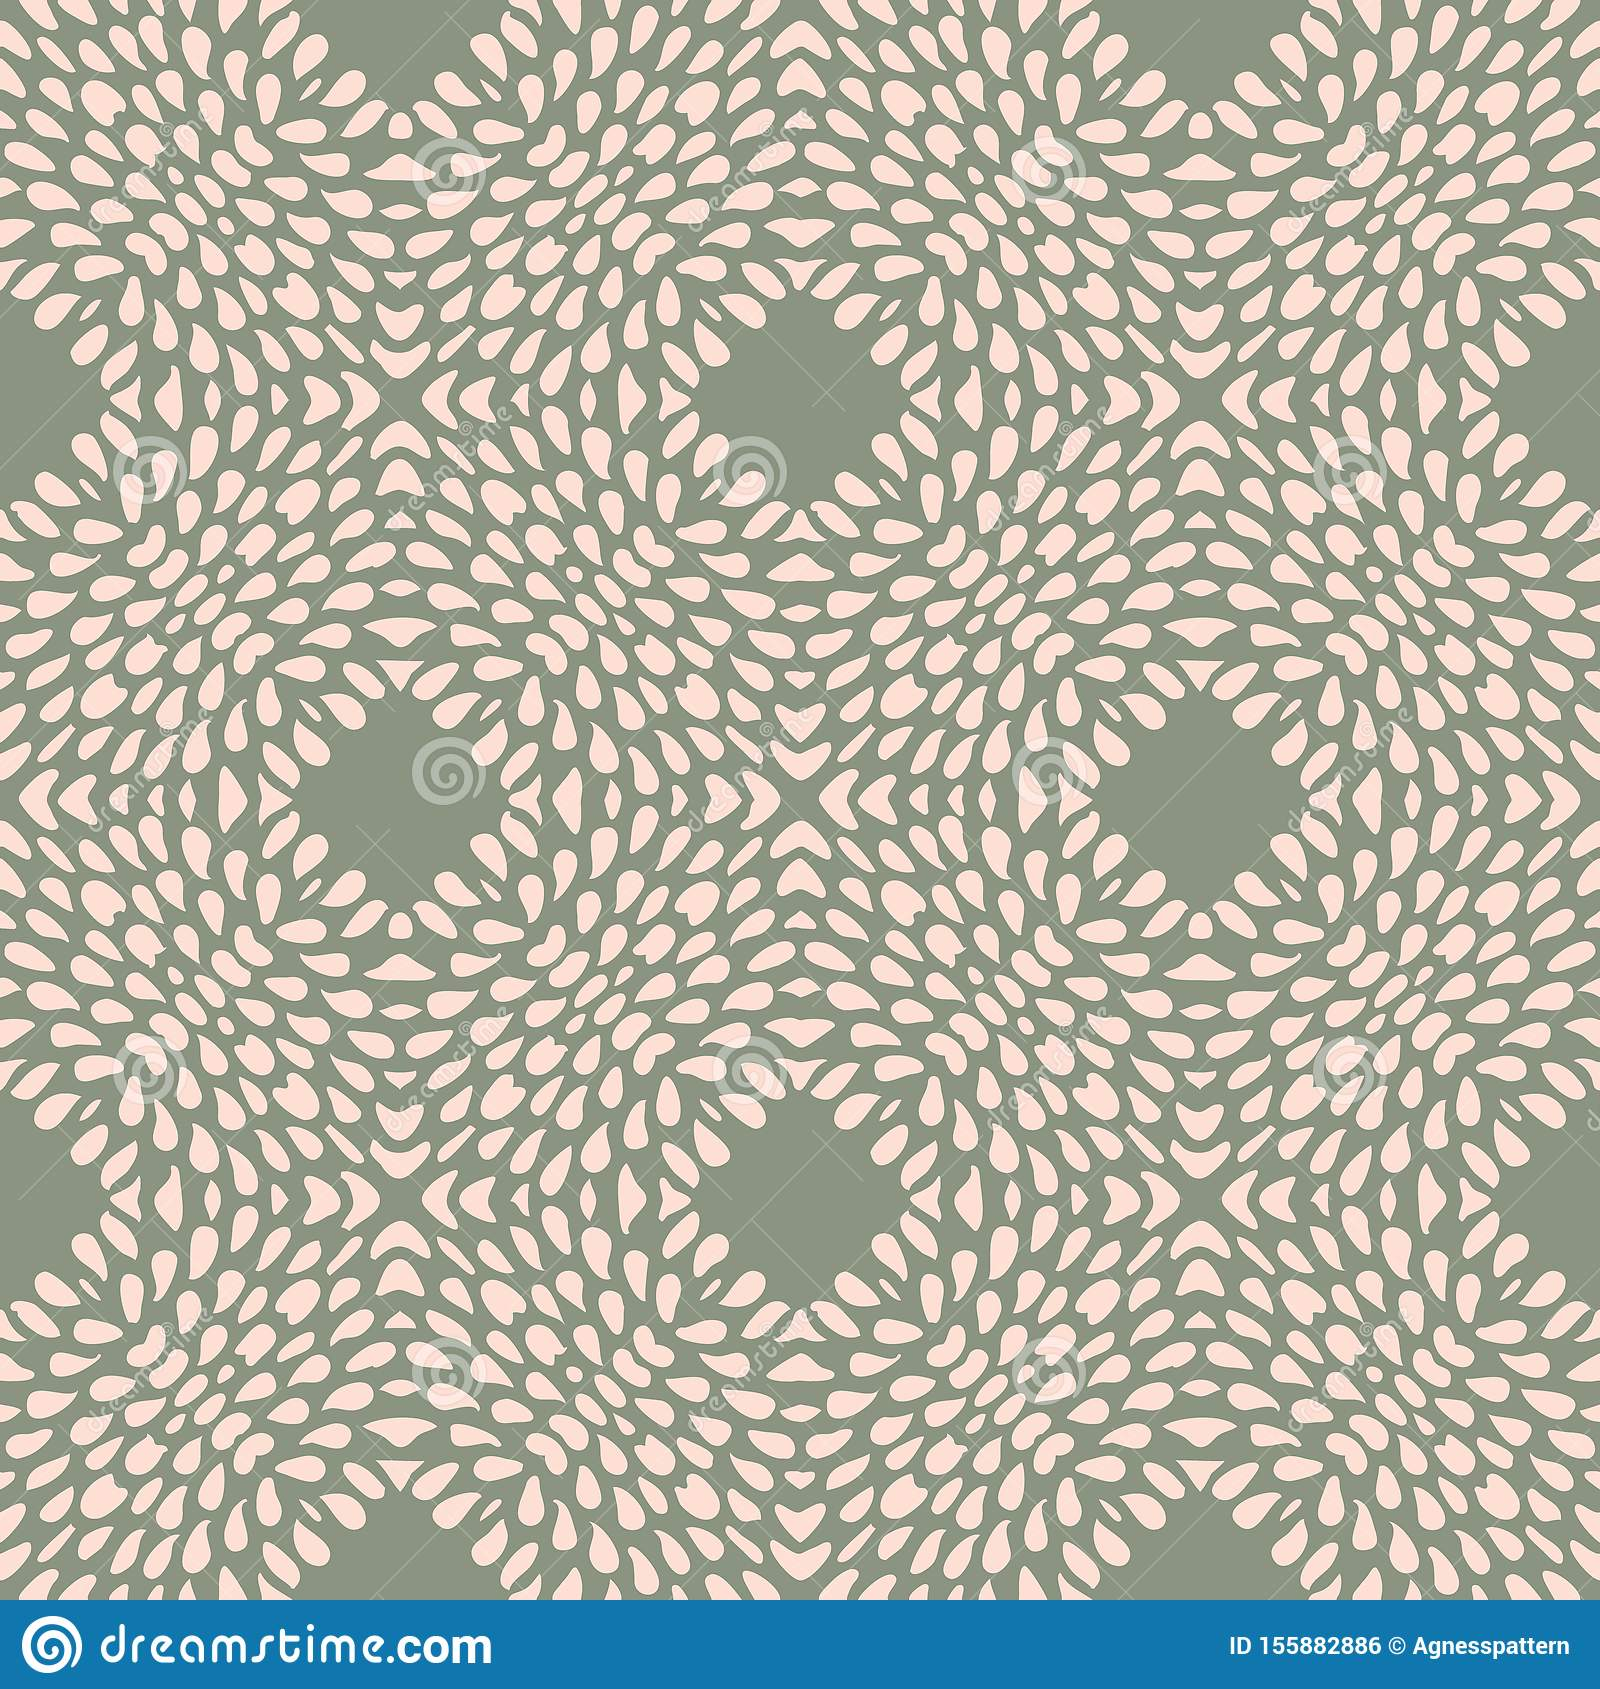 Vector Seamless Pattern With Irregular Dots Texture In Geometric Layout. Ethnic Pink And Olive